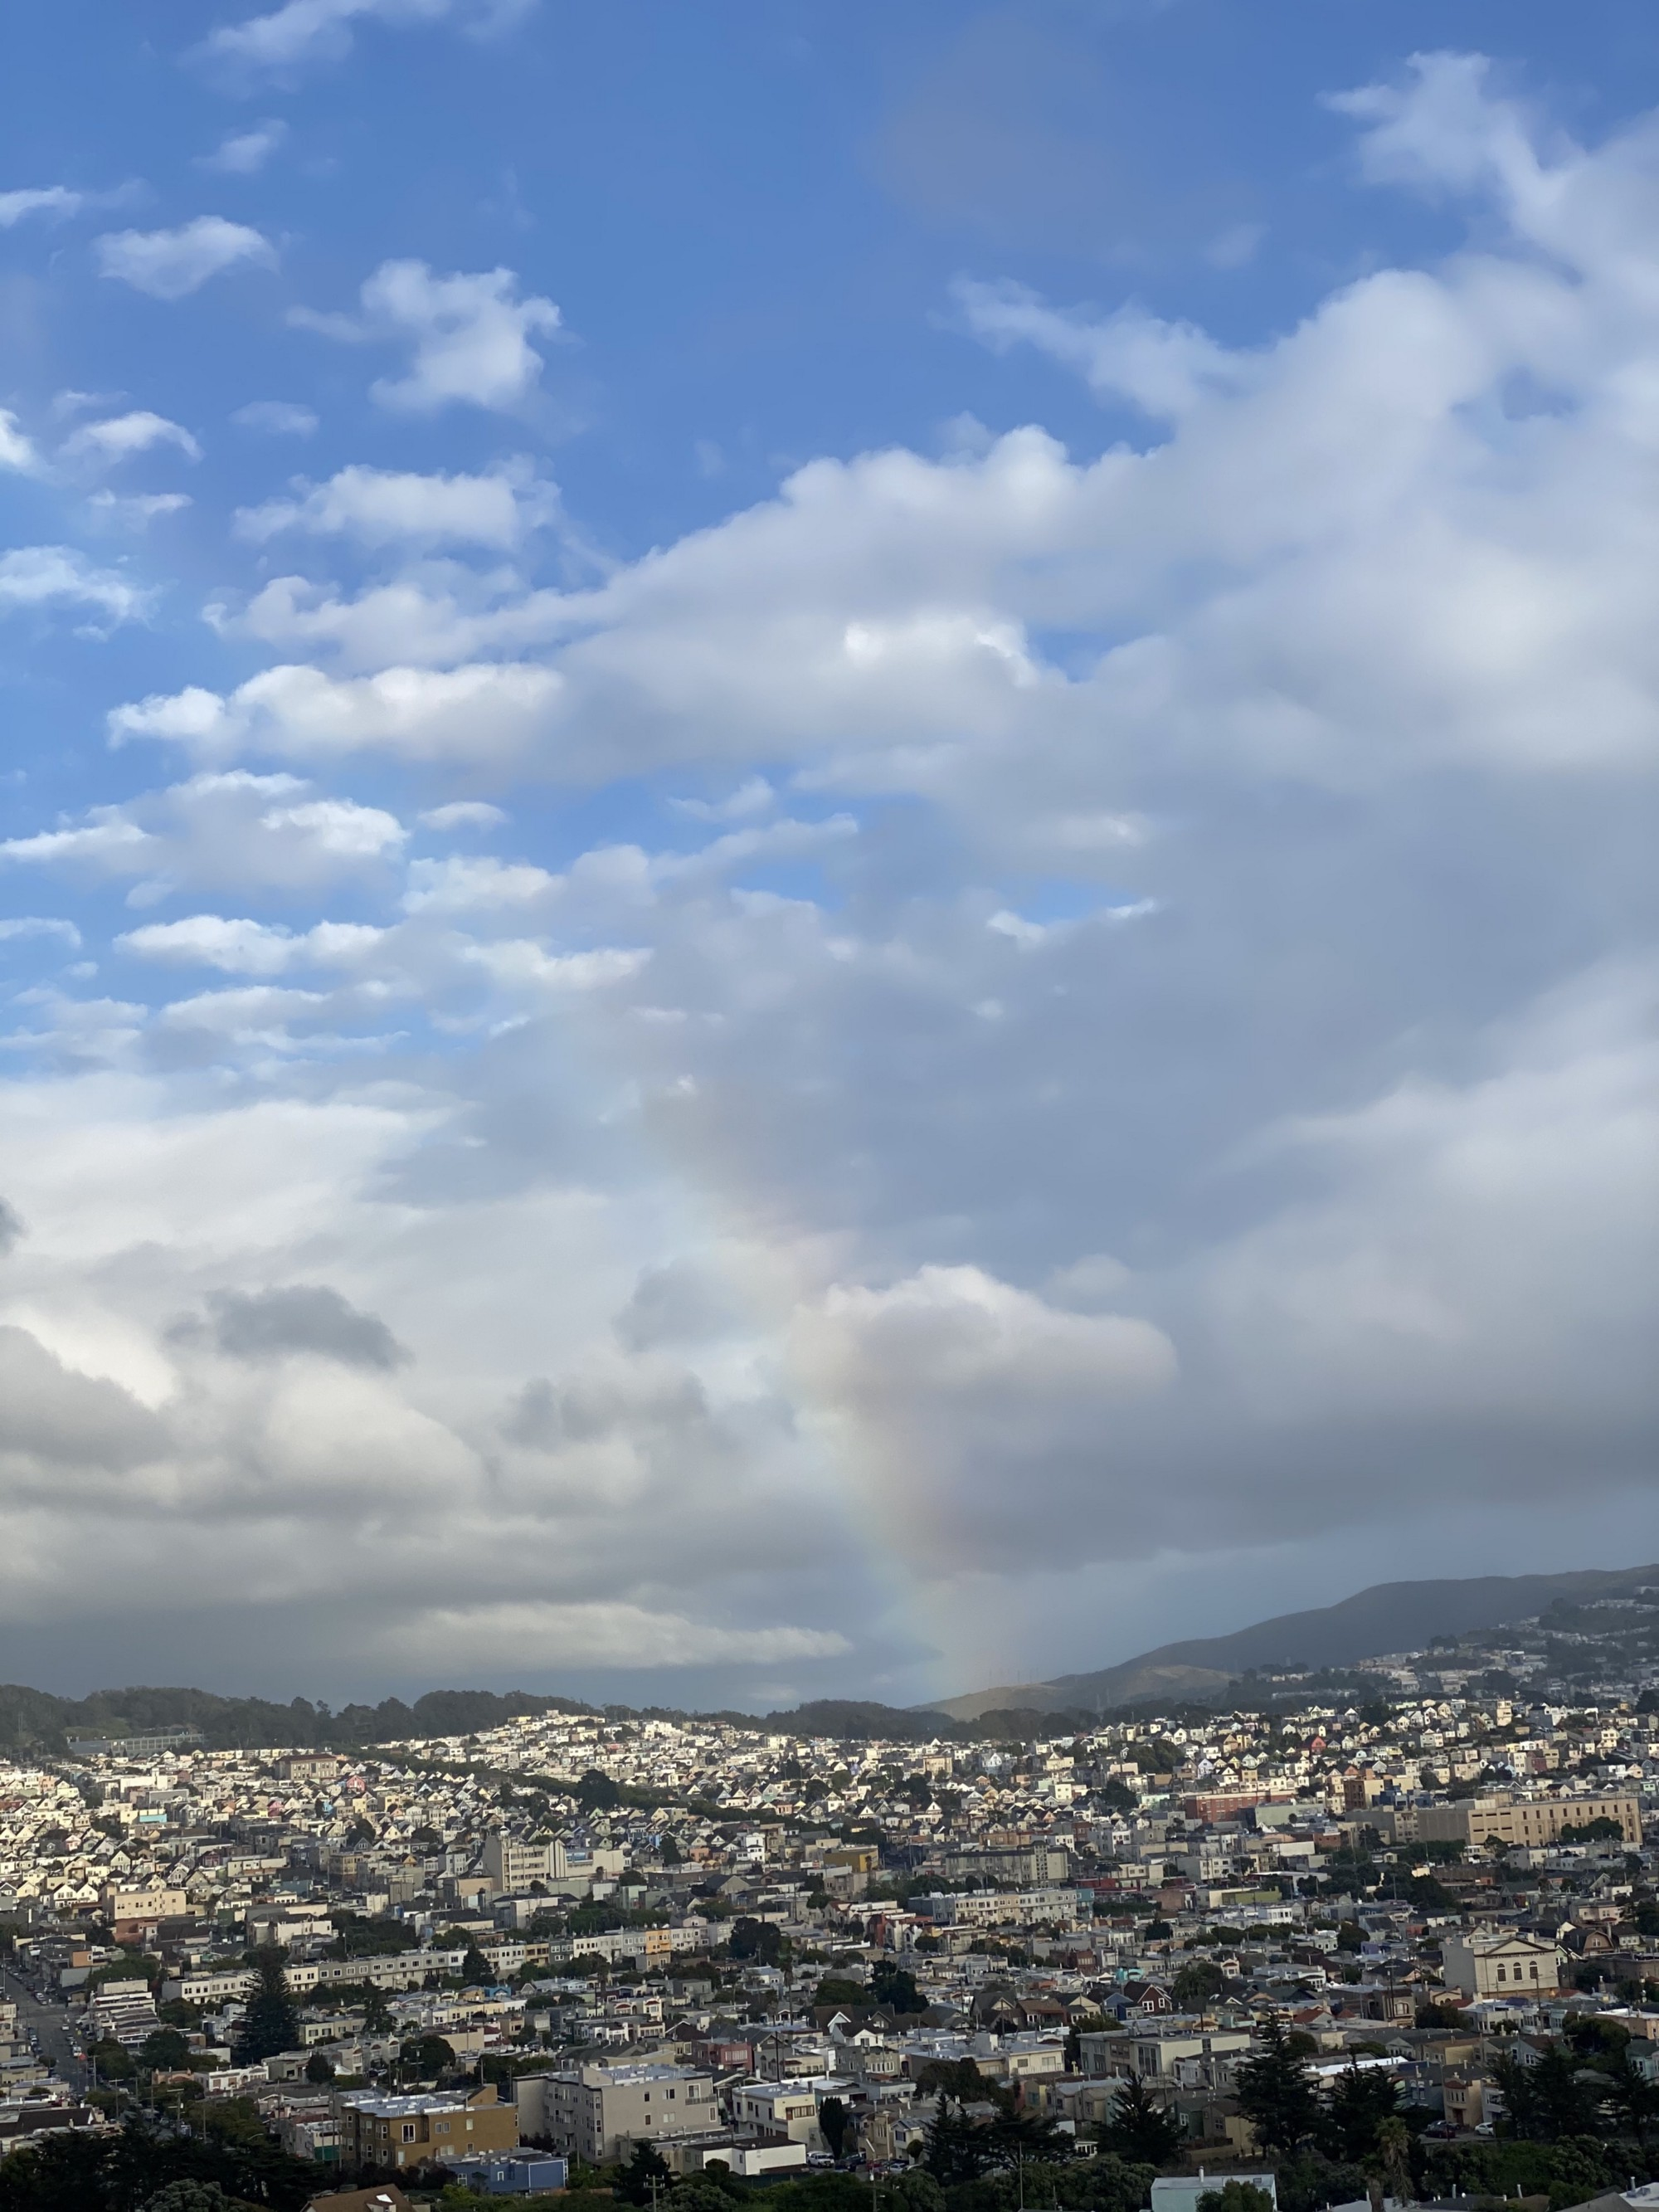 Photo of a beautiful sky with soft white clouds and a rainbow from the sky going in front of a mountain and a town in the valley.